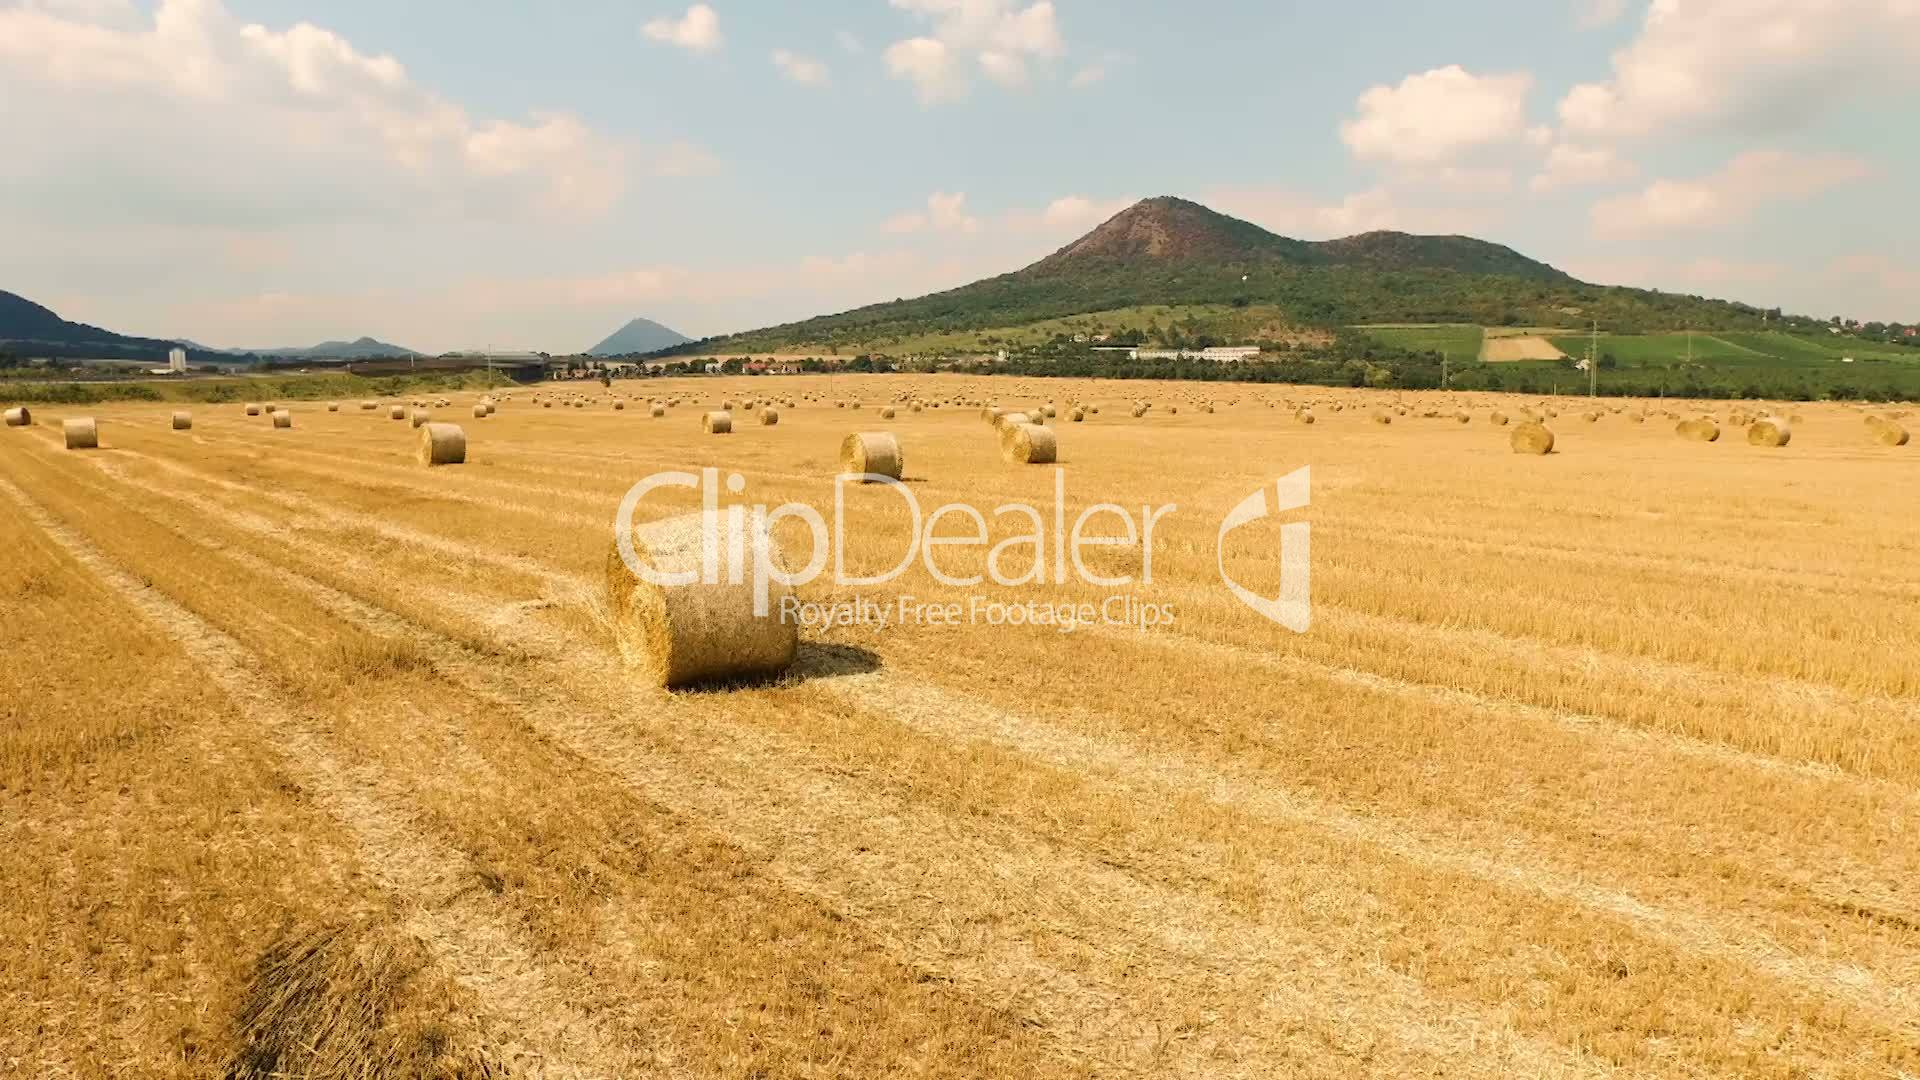 Aerial View Of Cropped Wheat Field With Bales Of Hay In The